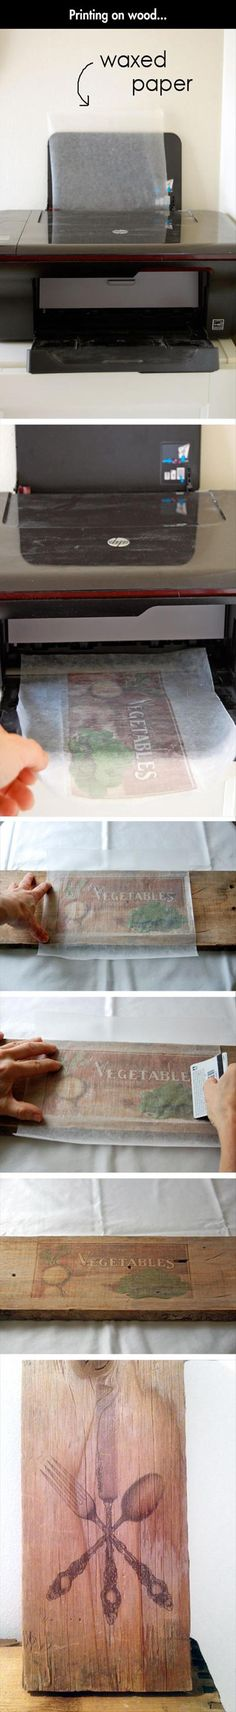 Dump A Day How To Print On Wood -